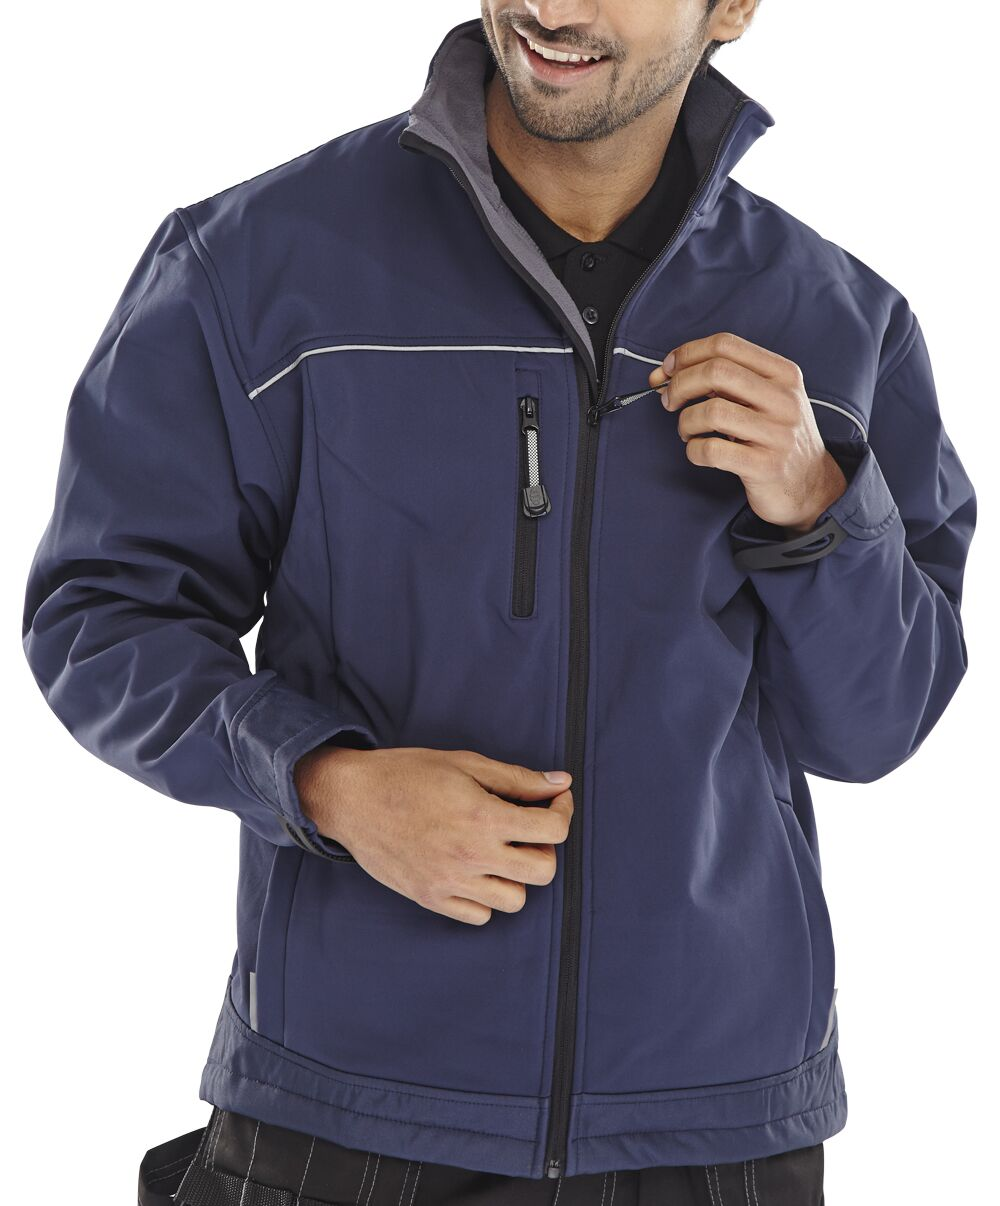 Body Protection Click Workwear Soft Shell Jacket Water Resistant Windproof XS Navy Ref SSJNXS *Approx 3 Day Leadtime*